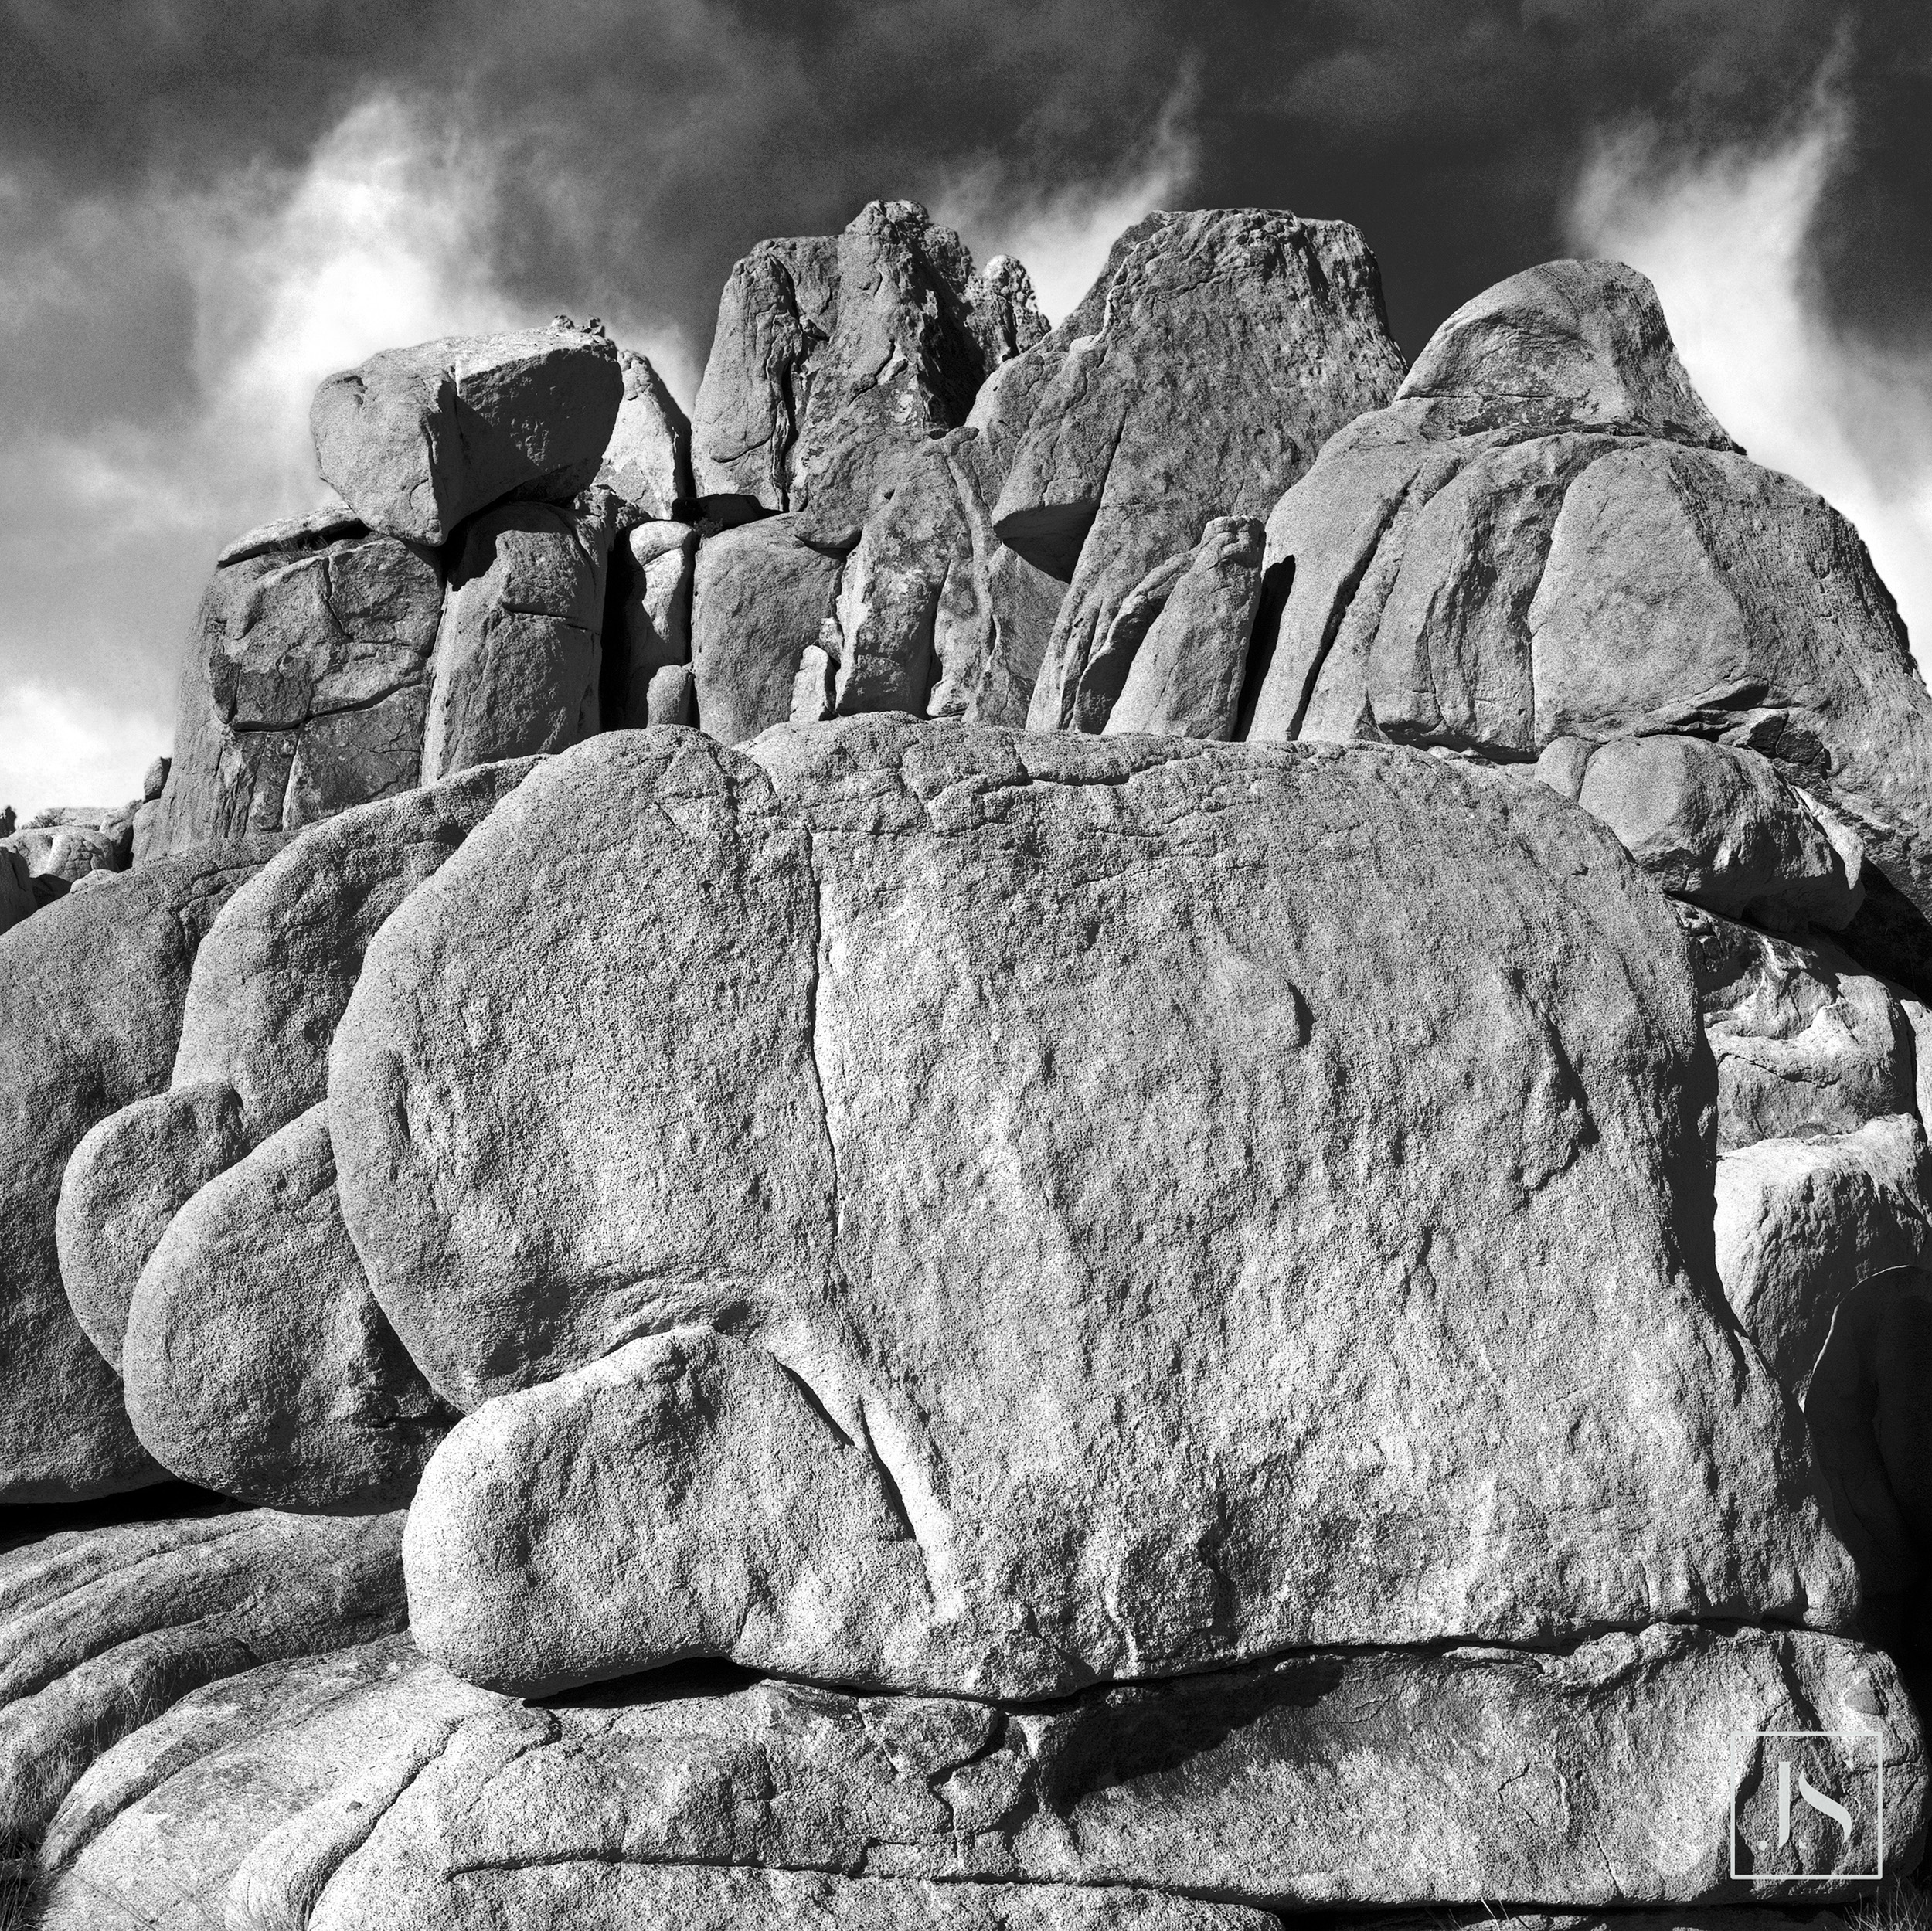 Rocks, Joshua Tree National Park, CA-2007